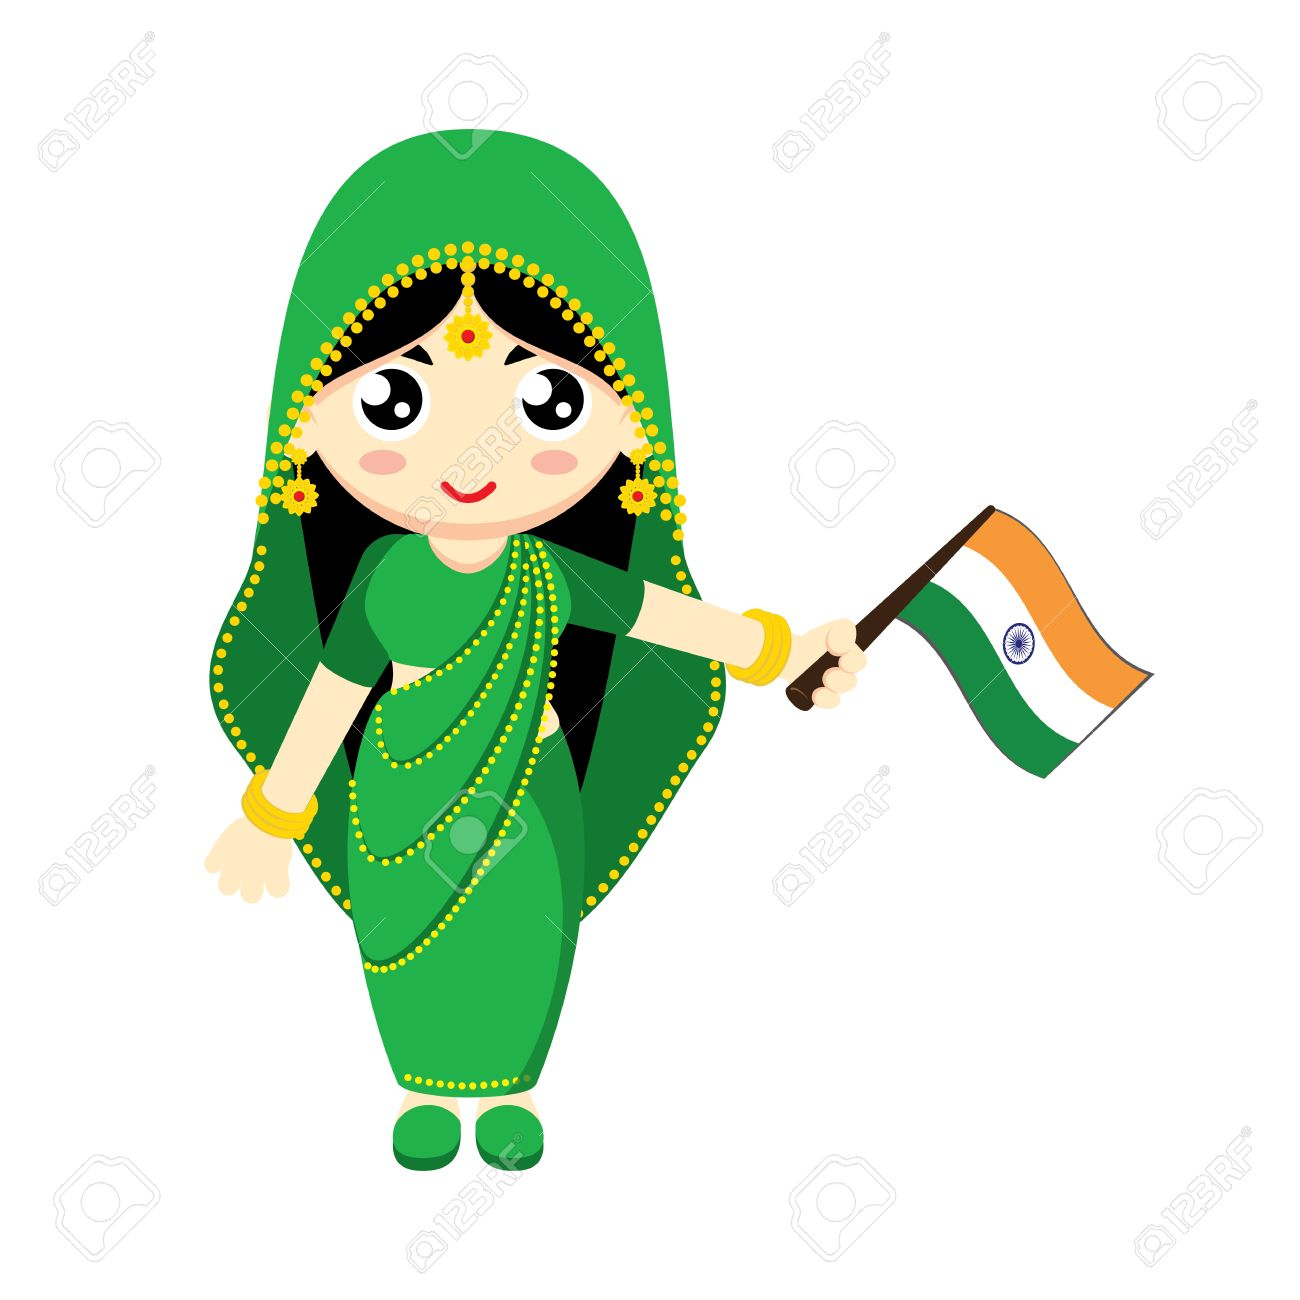 0c1eeabcd5 Little Girl Wearing Traditional Dress and Holding India flag. Vector  illustration. Stock Vector -